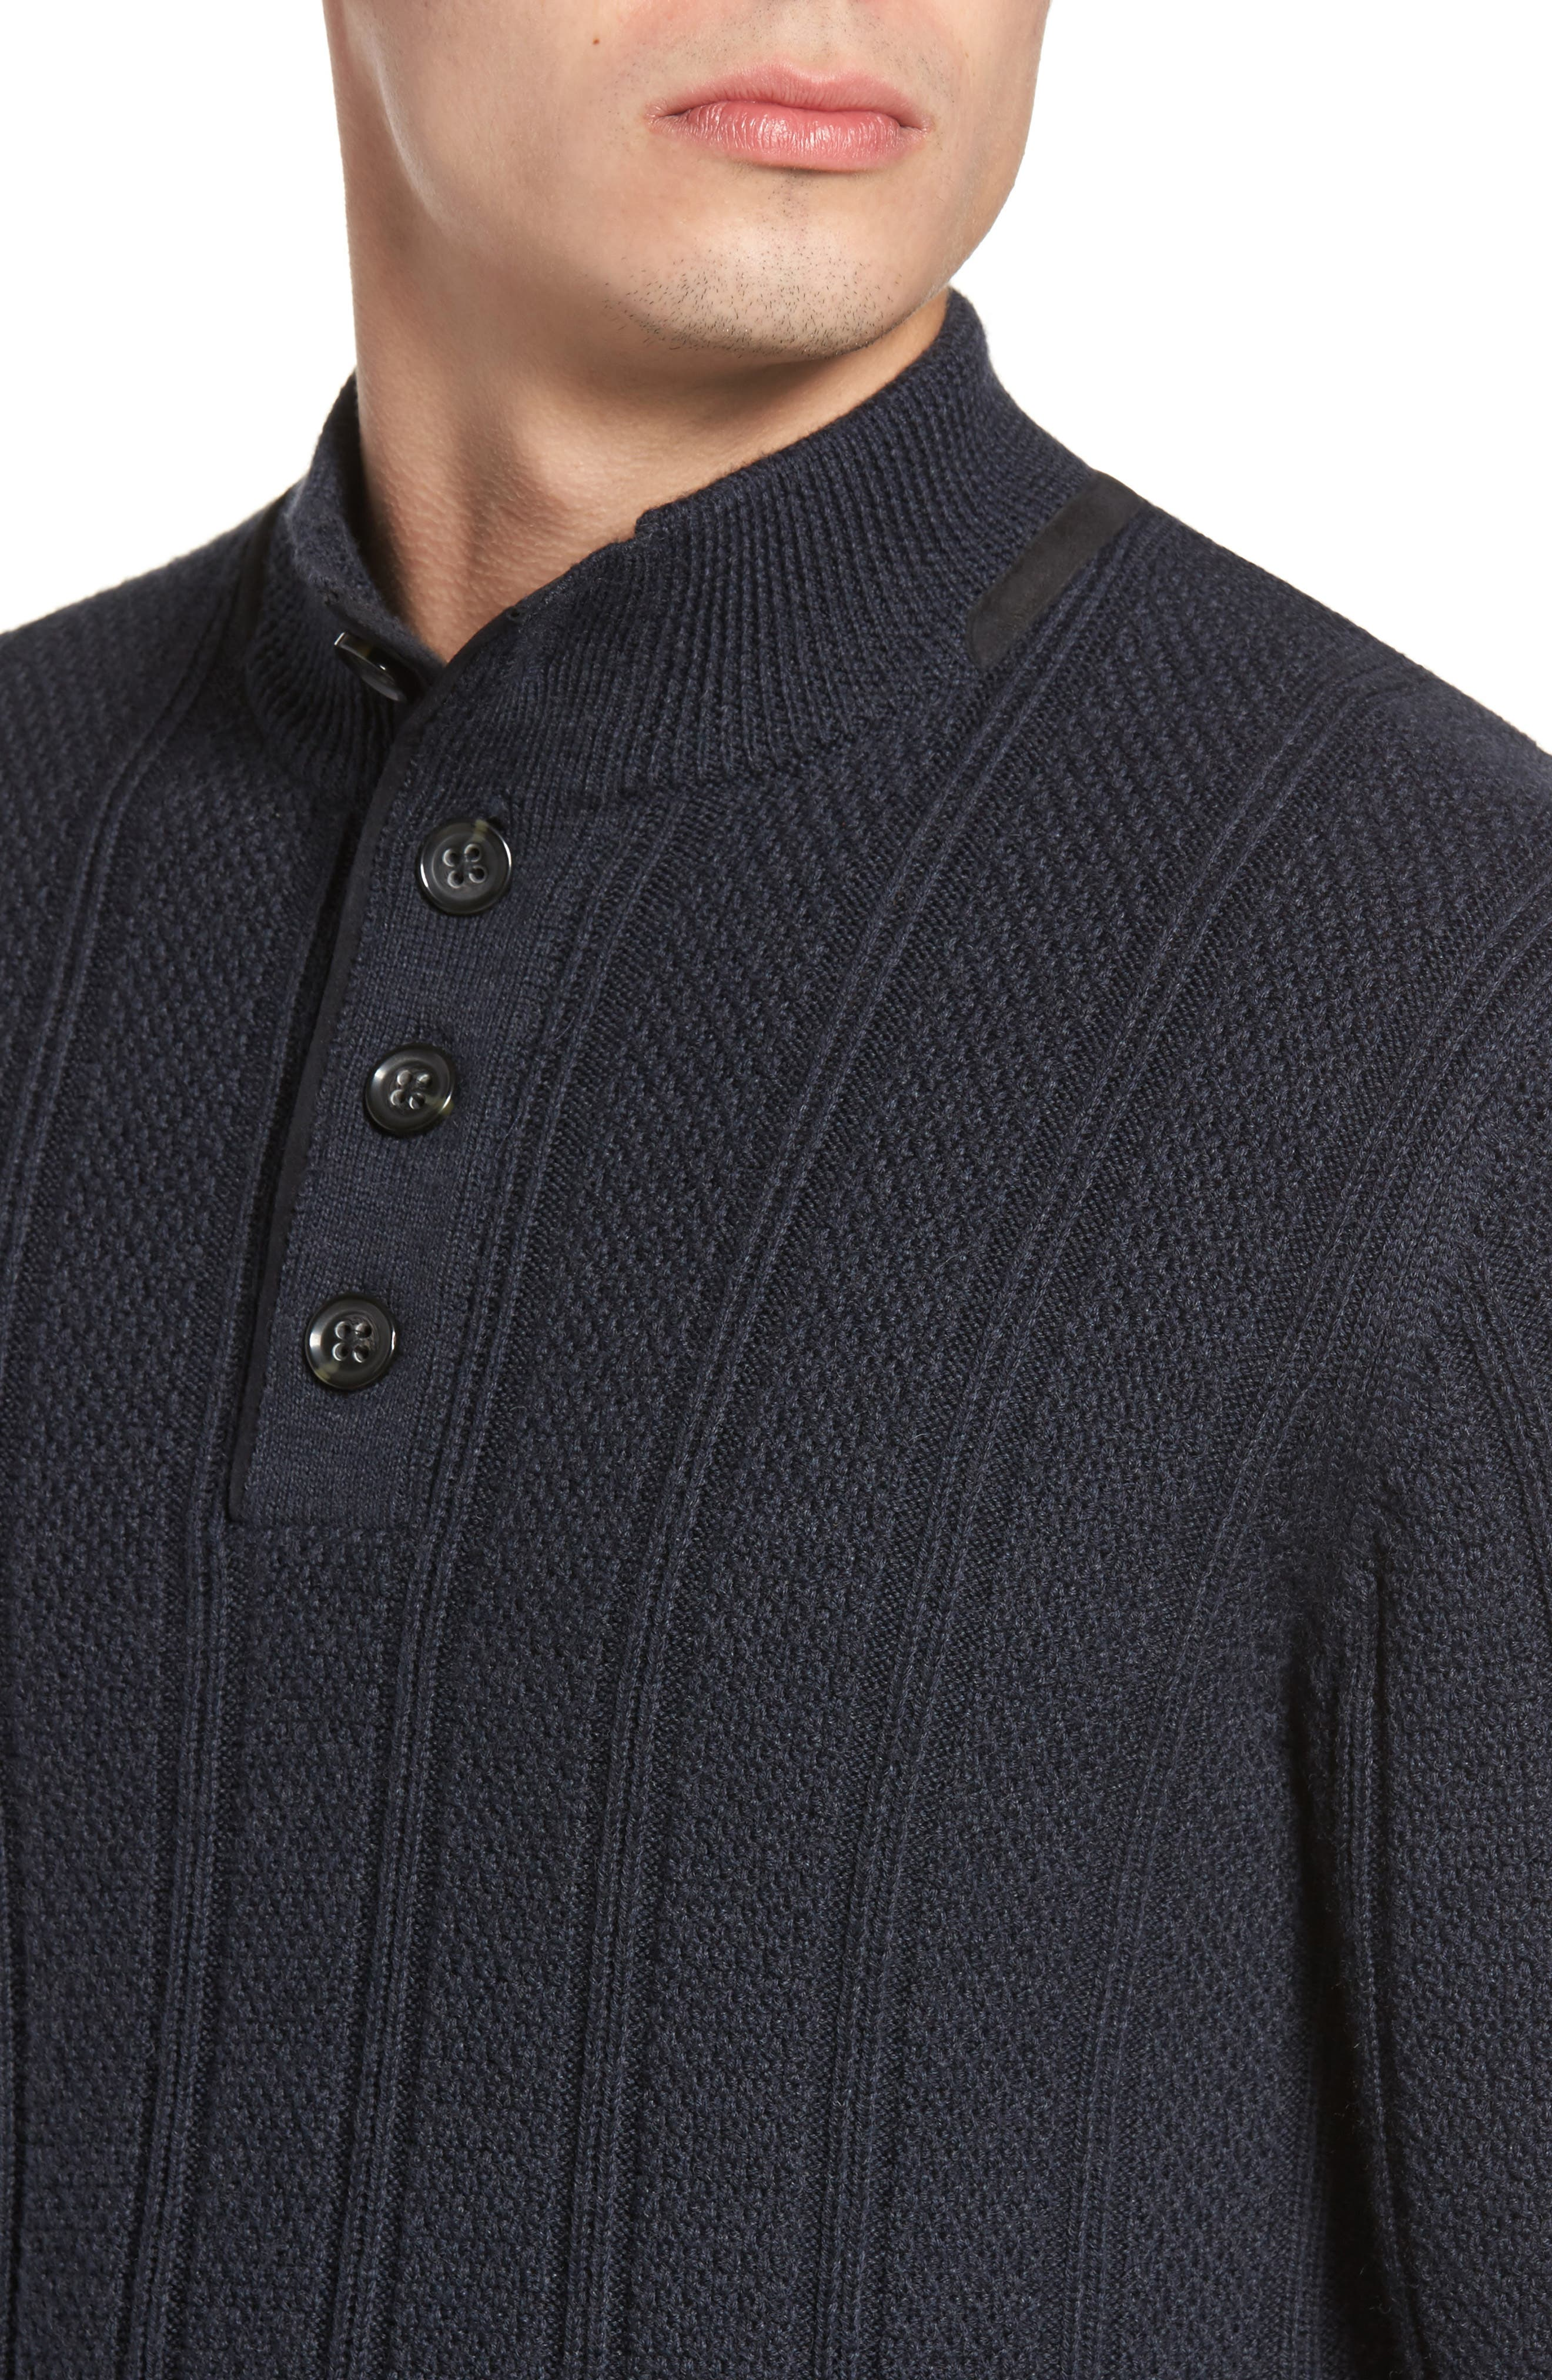 Alternate Image 4  - Rodd & Gunn Sovereign Island Wool Sweater